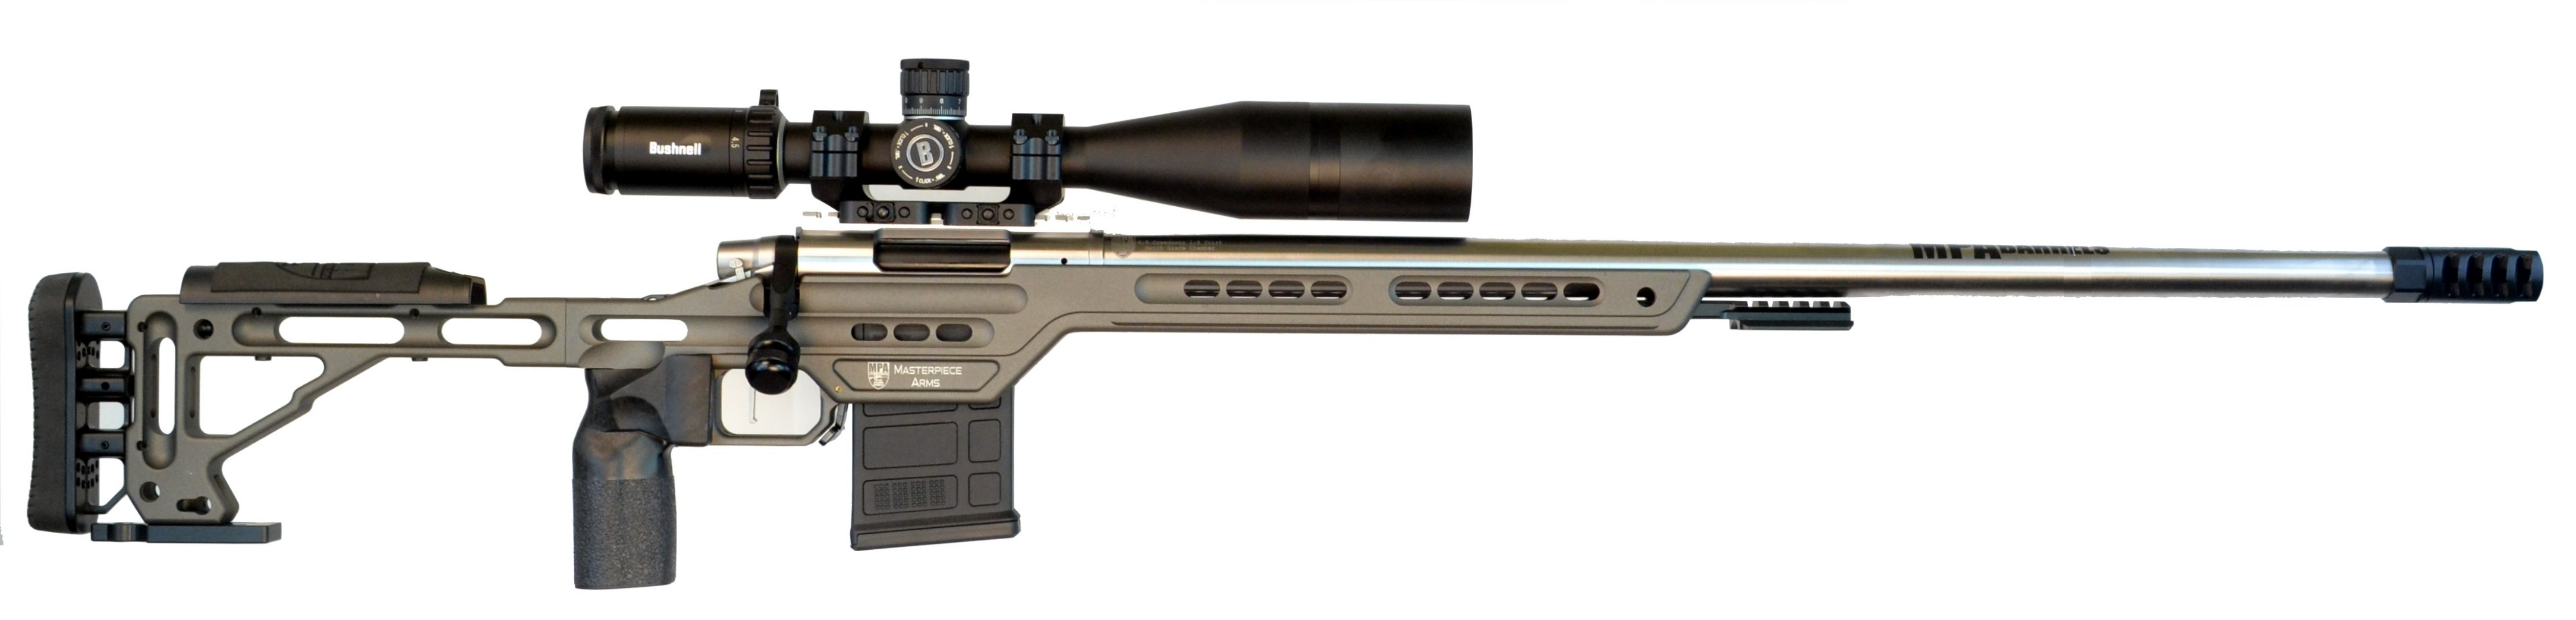 "MasterPiece Arms (MPA) Introduces the MPA BA Precision Match Rifle (PMR) Competition ""Ready"" Rifle"